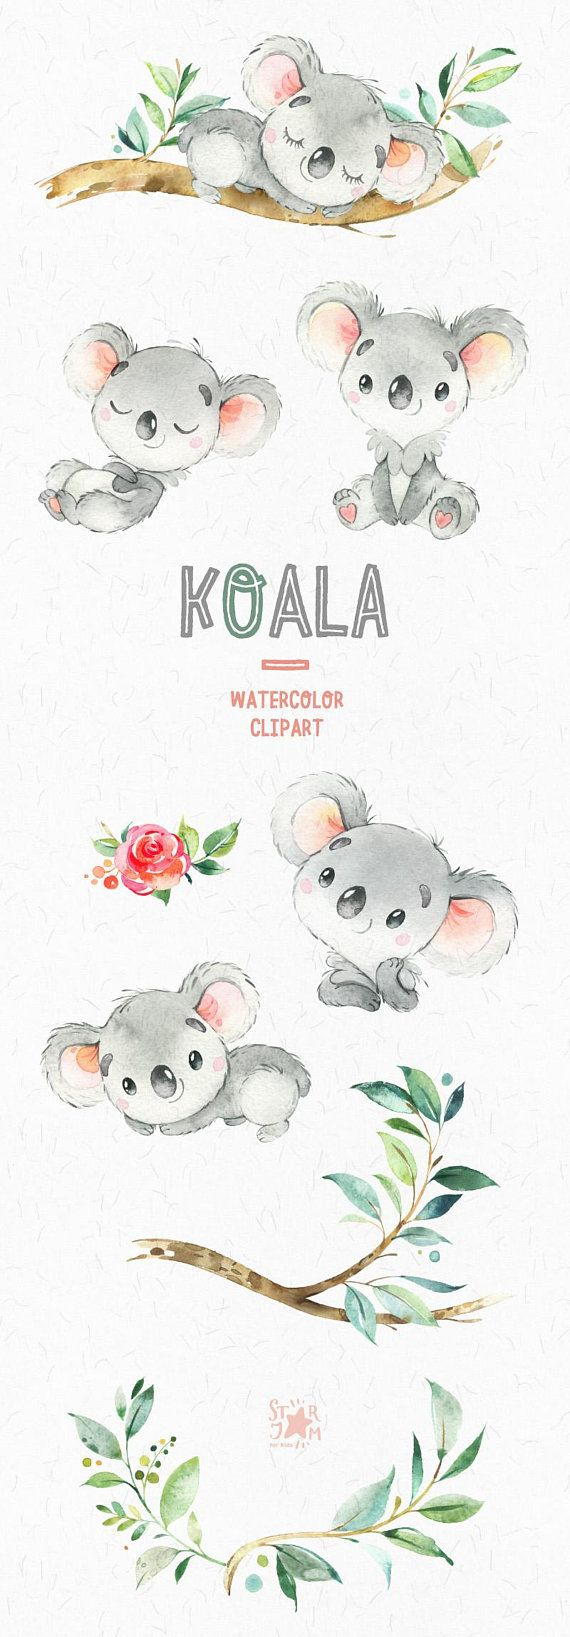 Koala. Little animals watercolor clipart, Australia, koala bear, watercolor, florals, flowers, babyshower, diy, kids, baby, cute, nursery